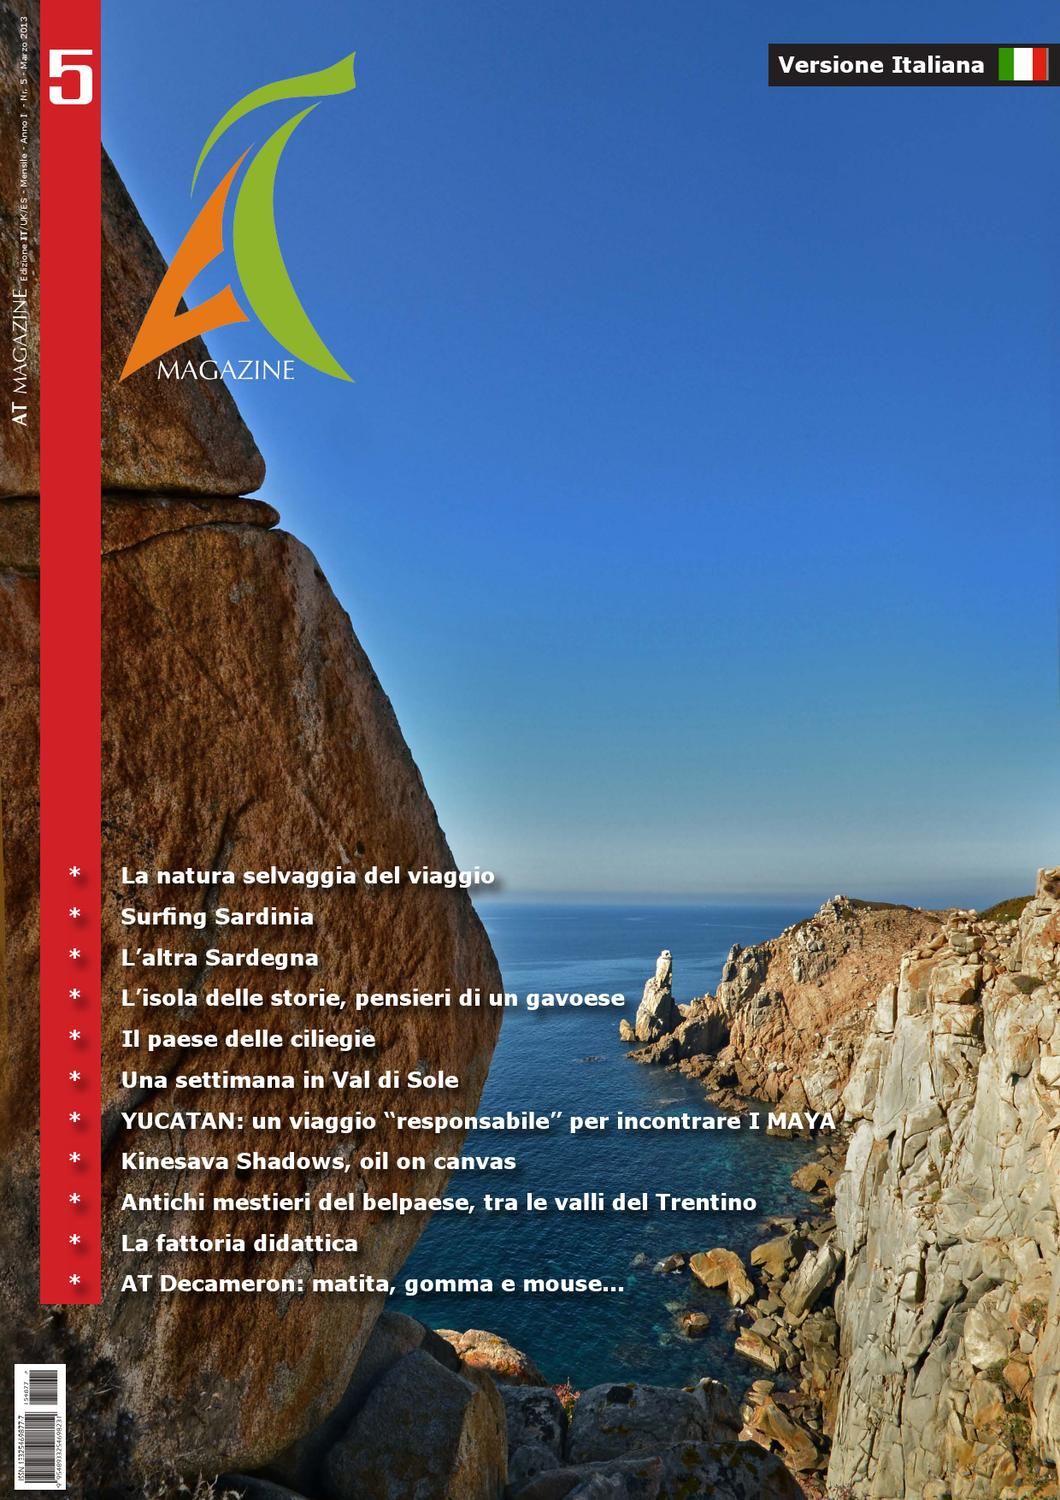 Più Che Tessuti Assemini Ca at magazine nr. 5 - e/it by at magazine - issuu